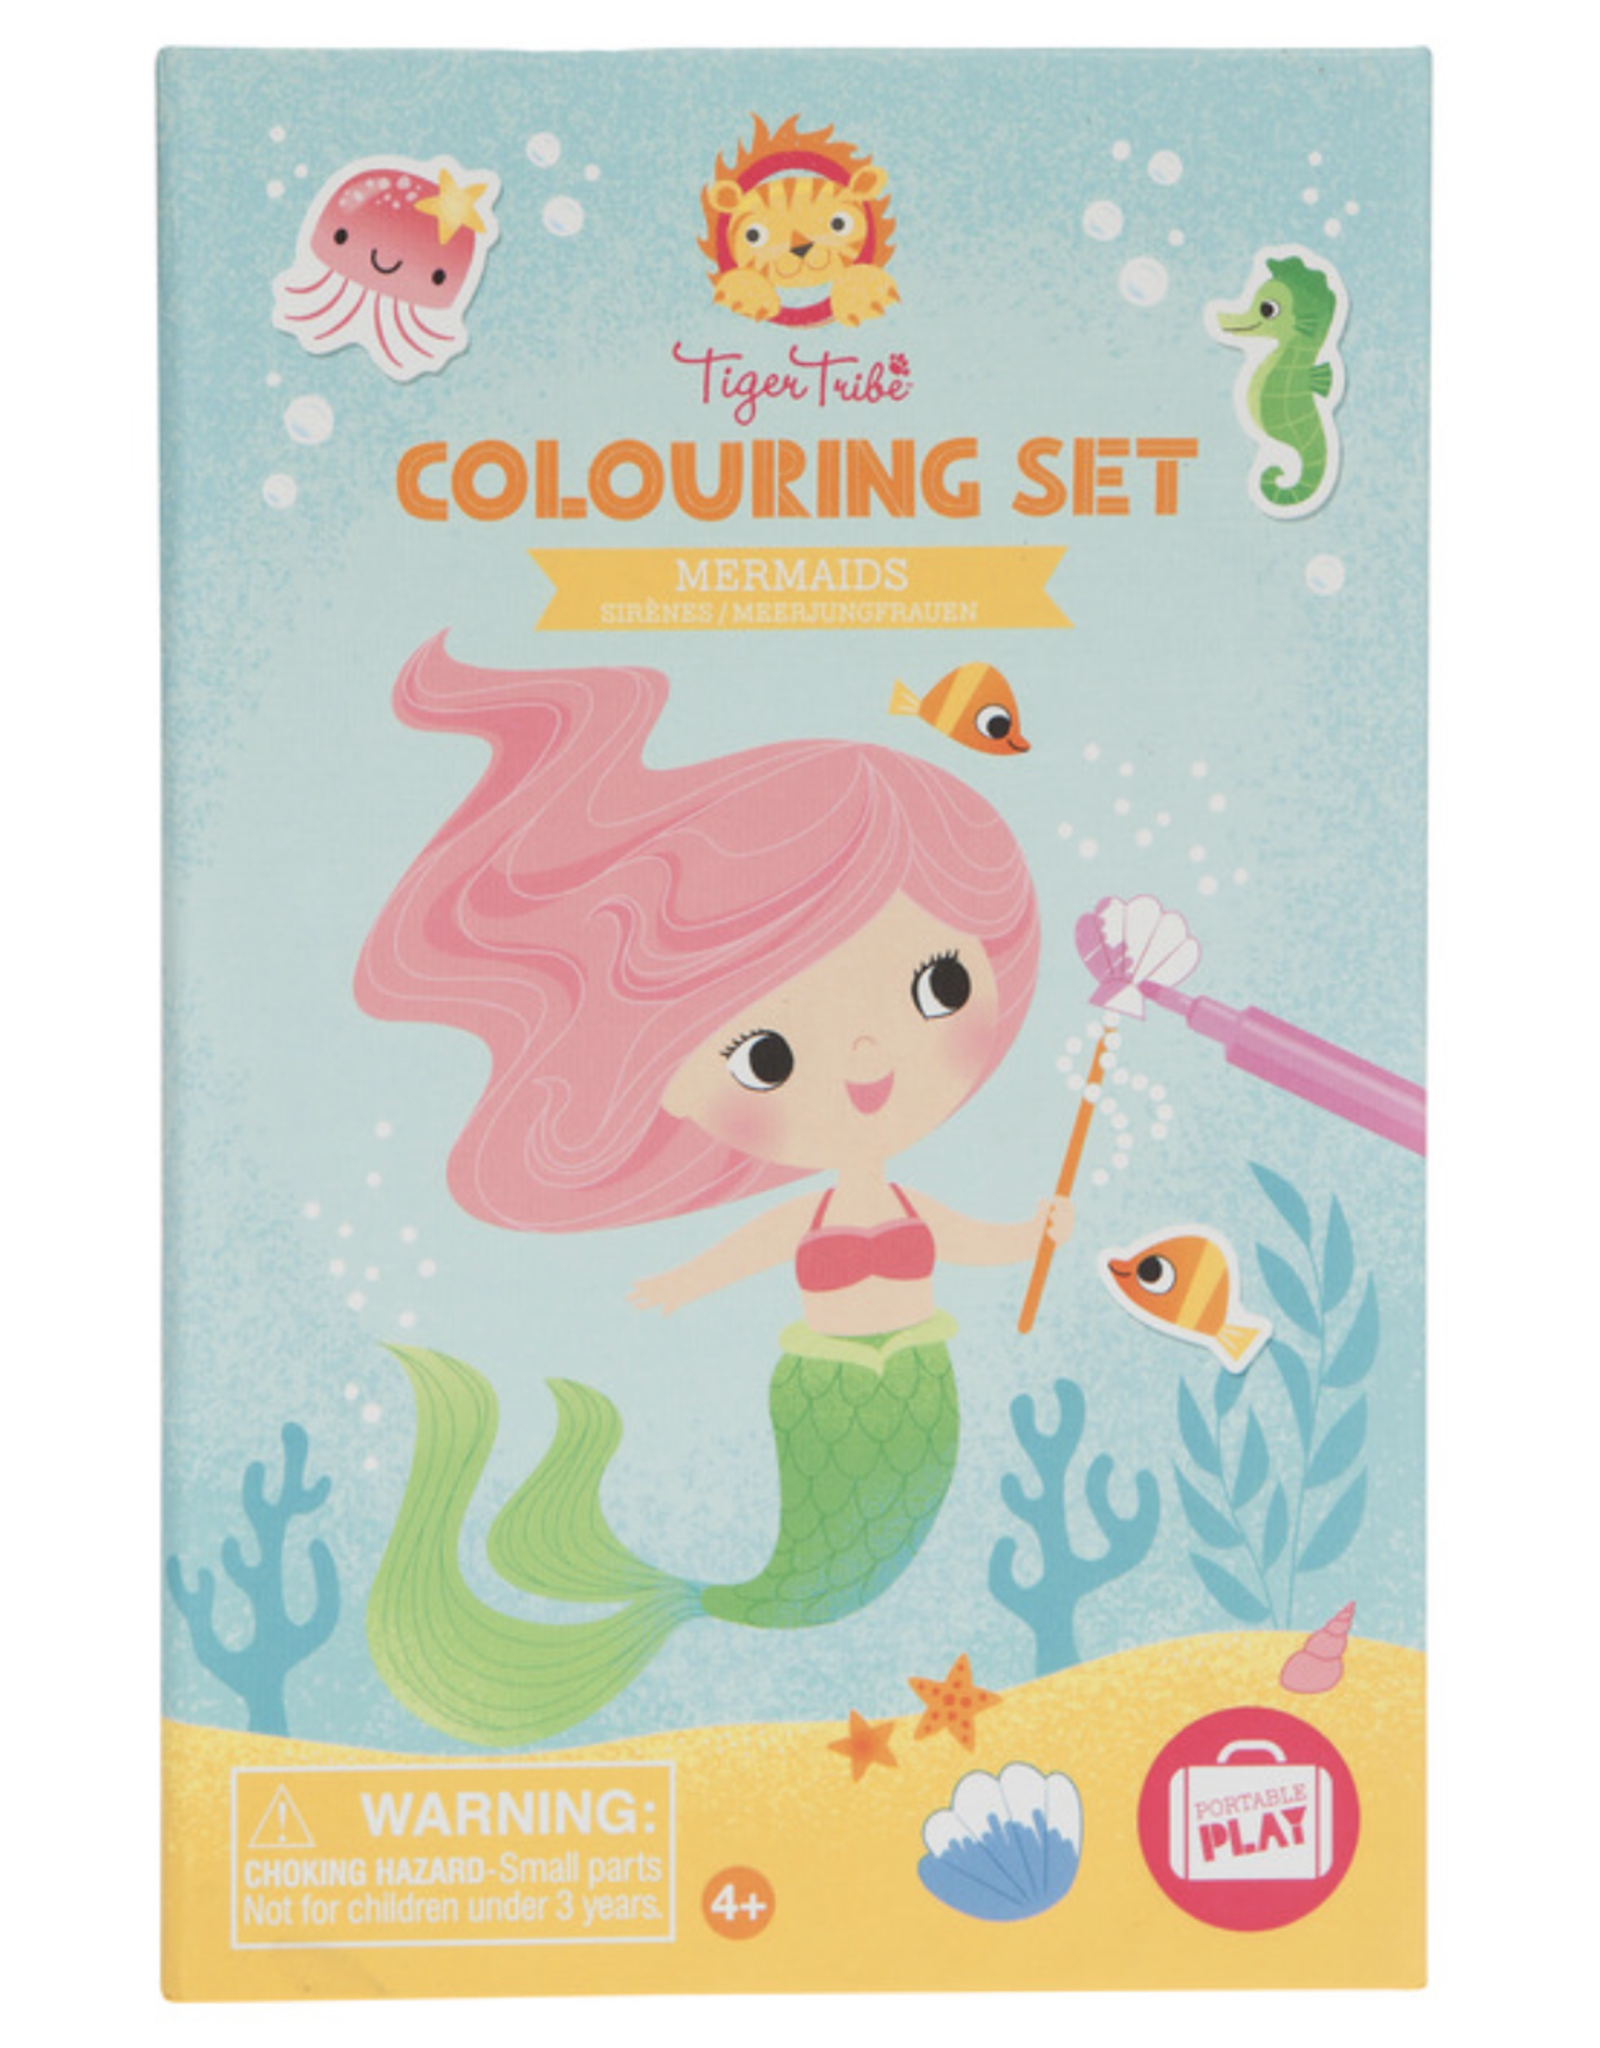 Tiger Tribe Coloring Set - Mermaids